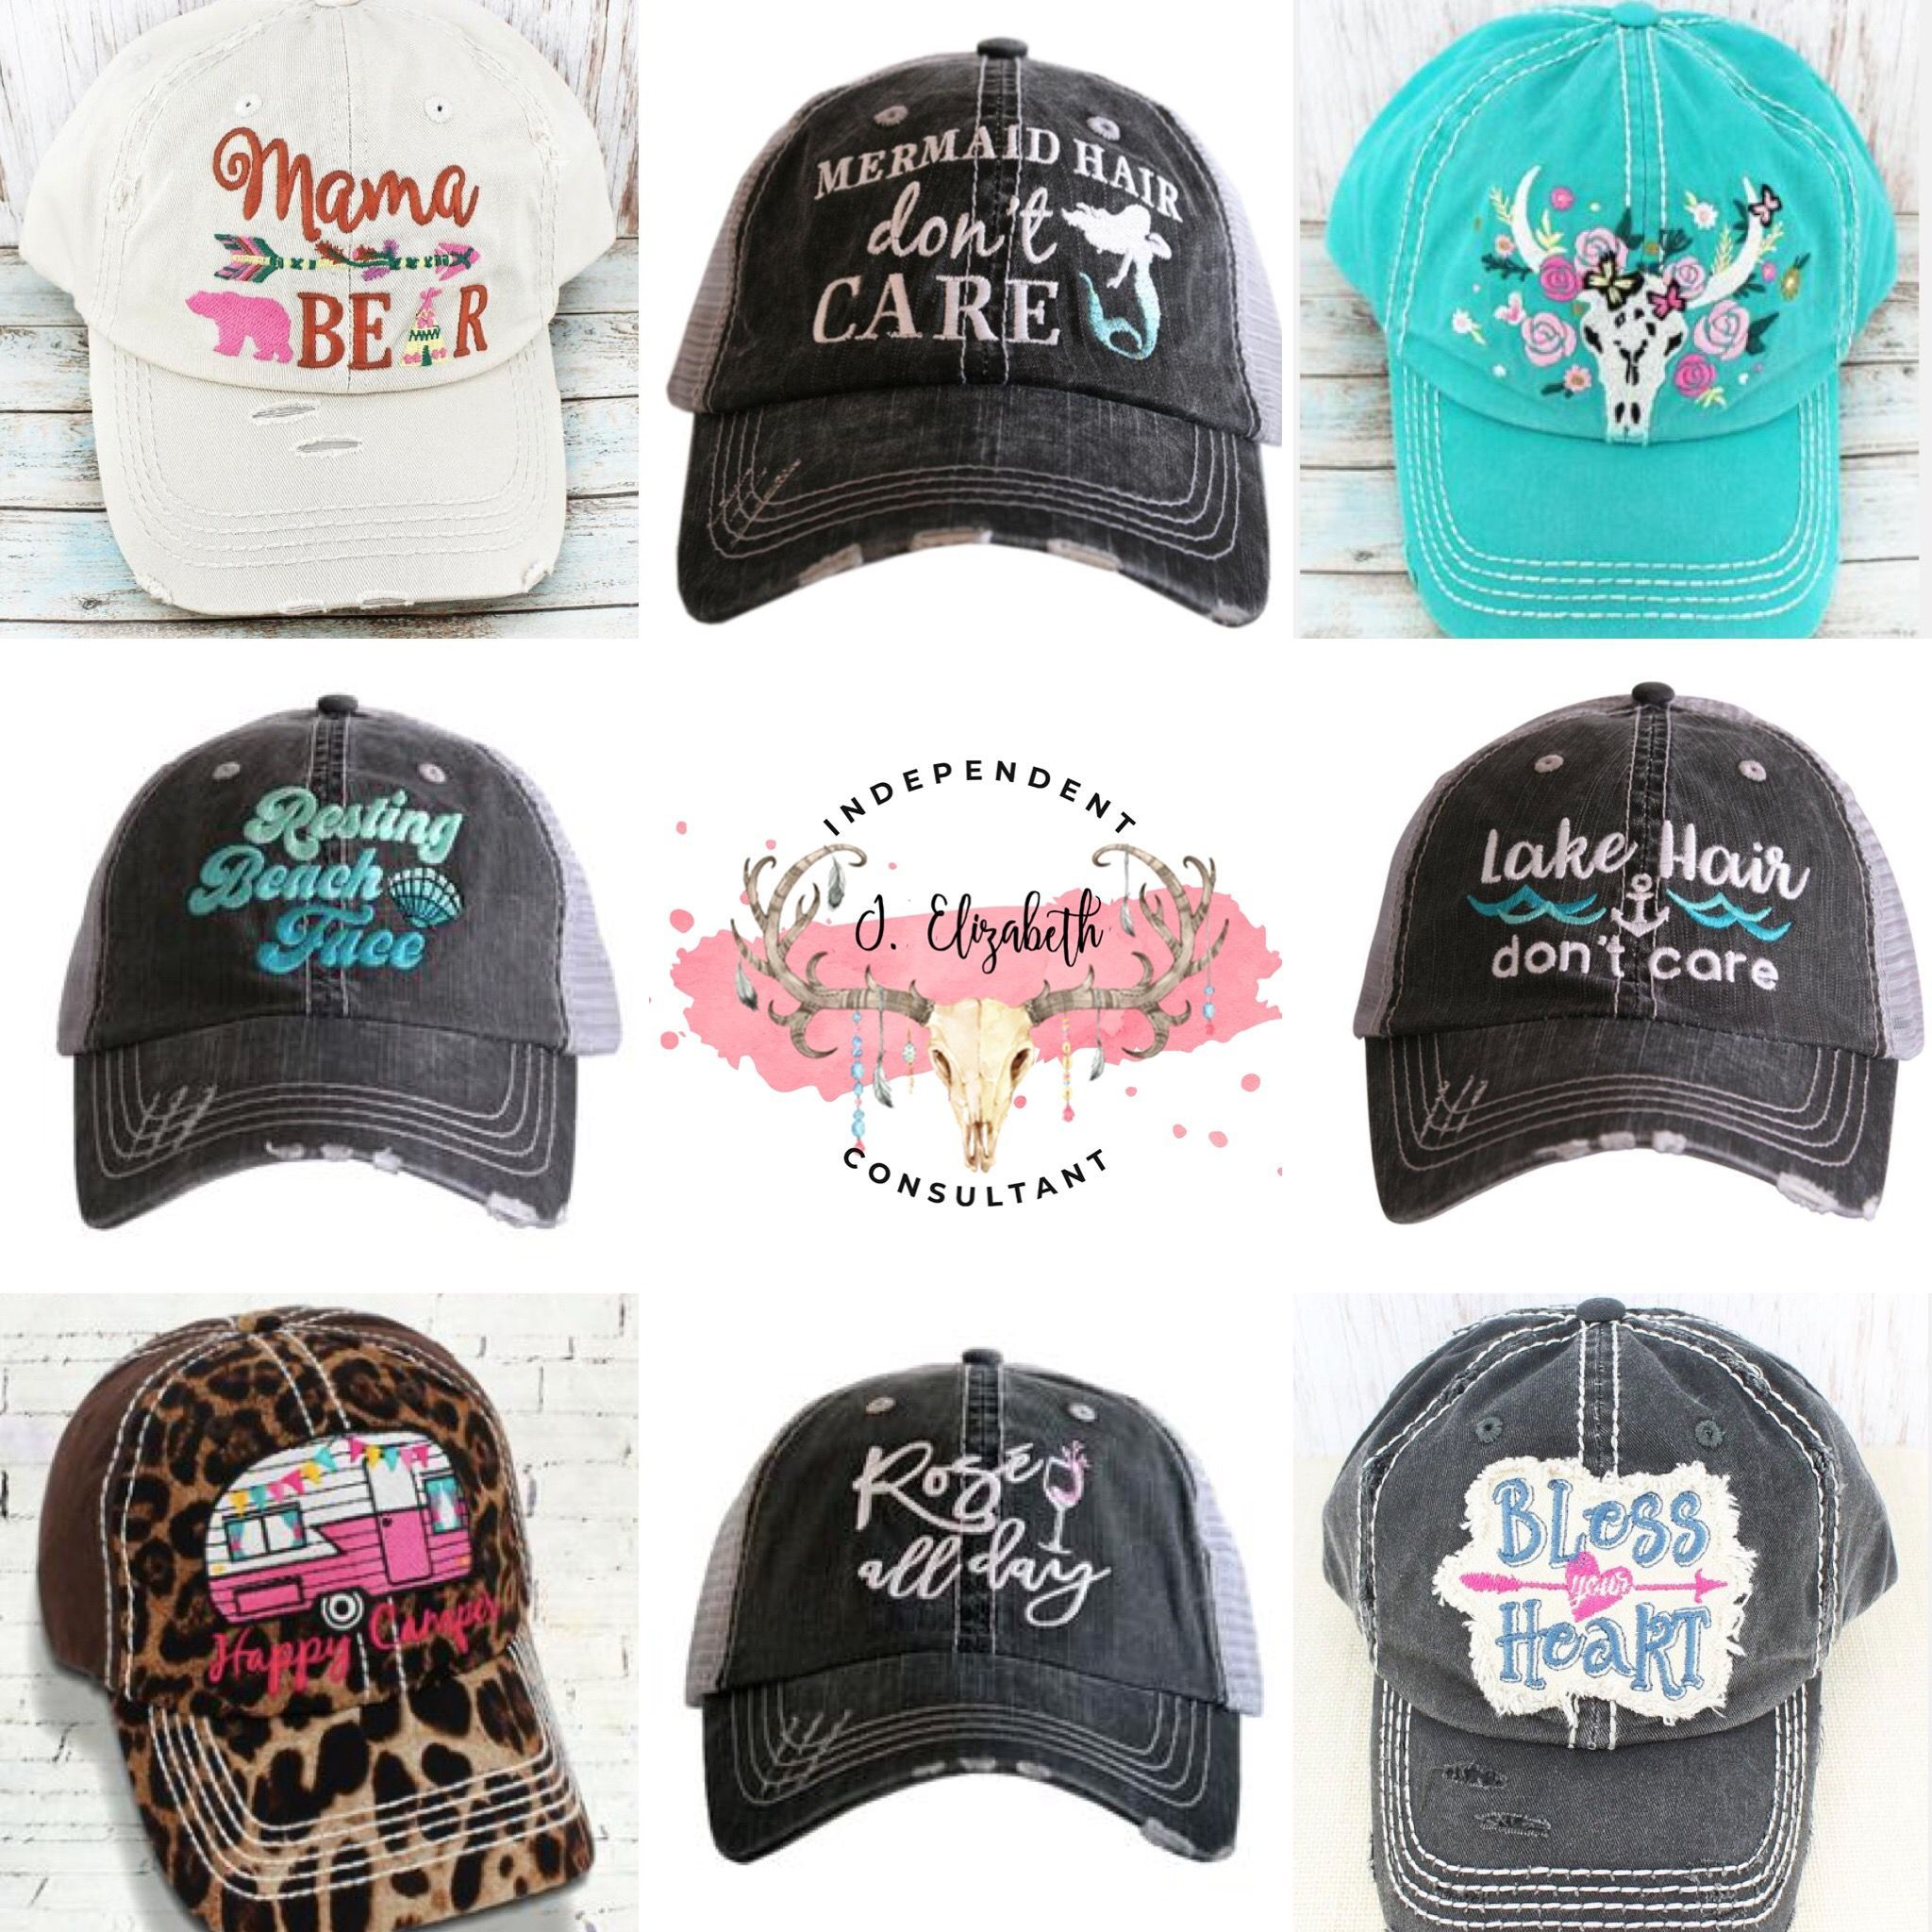 Hats for women. Women s hats. Hats with sayings. Shirts with sayings.  Women s hats. Funny hats. Hats. Lettering. Hand lettering. Calligraphy.  Funny. 69756995cfc2